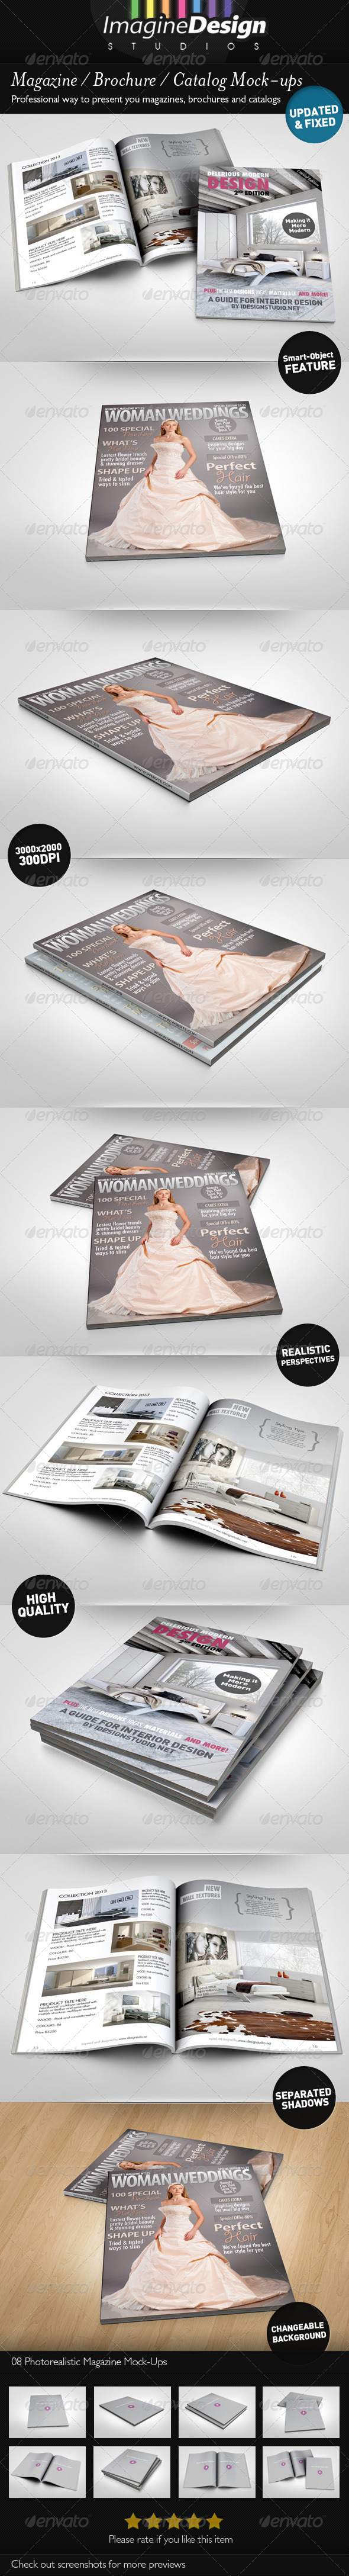 Photorealistic Brochure / Magazine Mock-up - Magazines Print